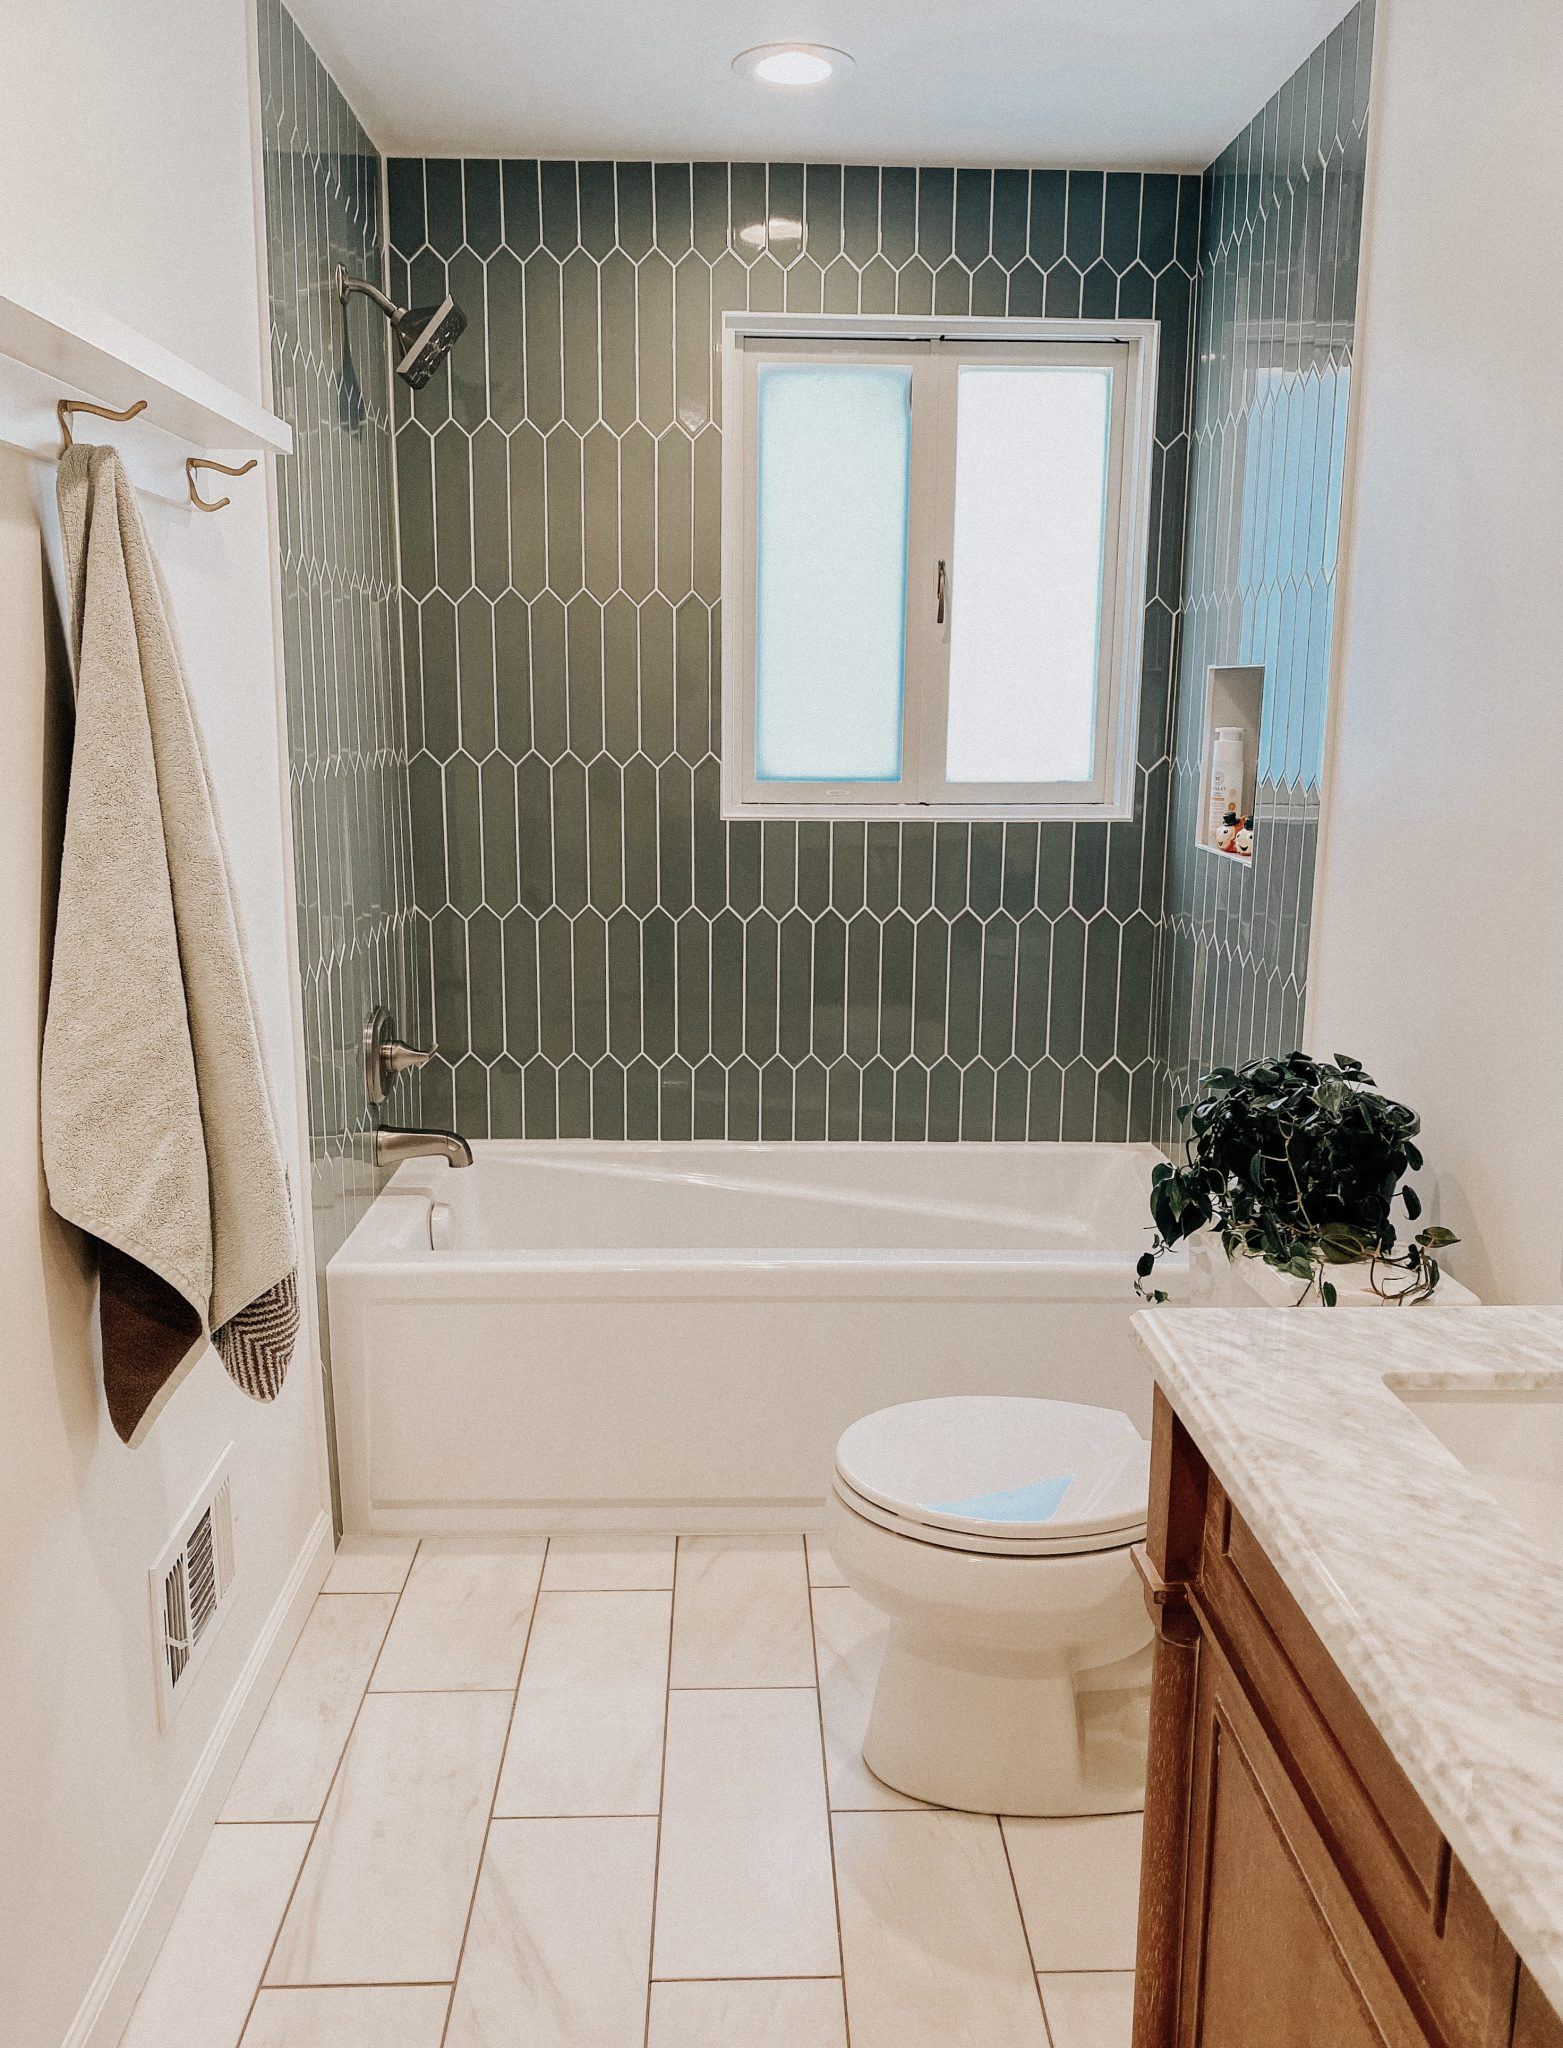 Bathroom reno progress, a favorite recipe and more | Daily Splendor Life and Style Blog | finishing up the bathroom renovation #pickettile #coastalbathroom #designideas #interiordesign #renovationprogress #homerenovation #bathroomrenovation